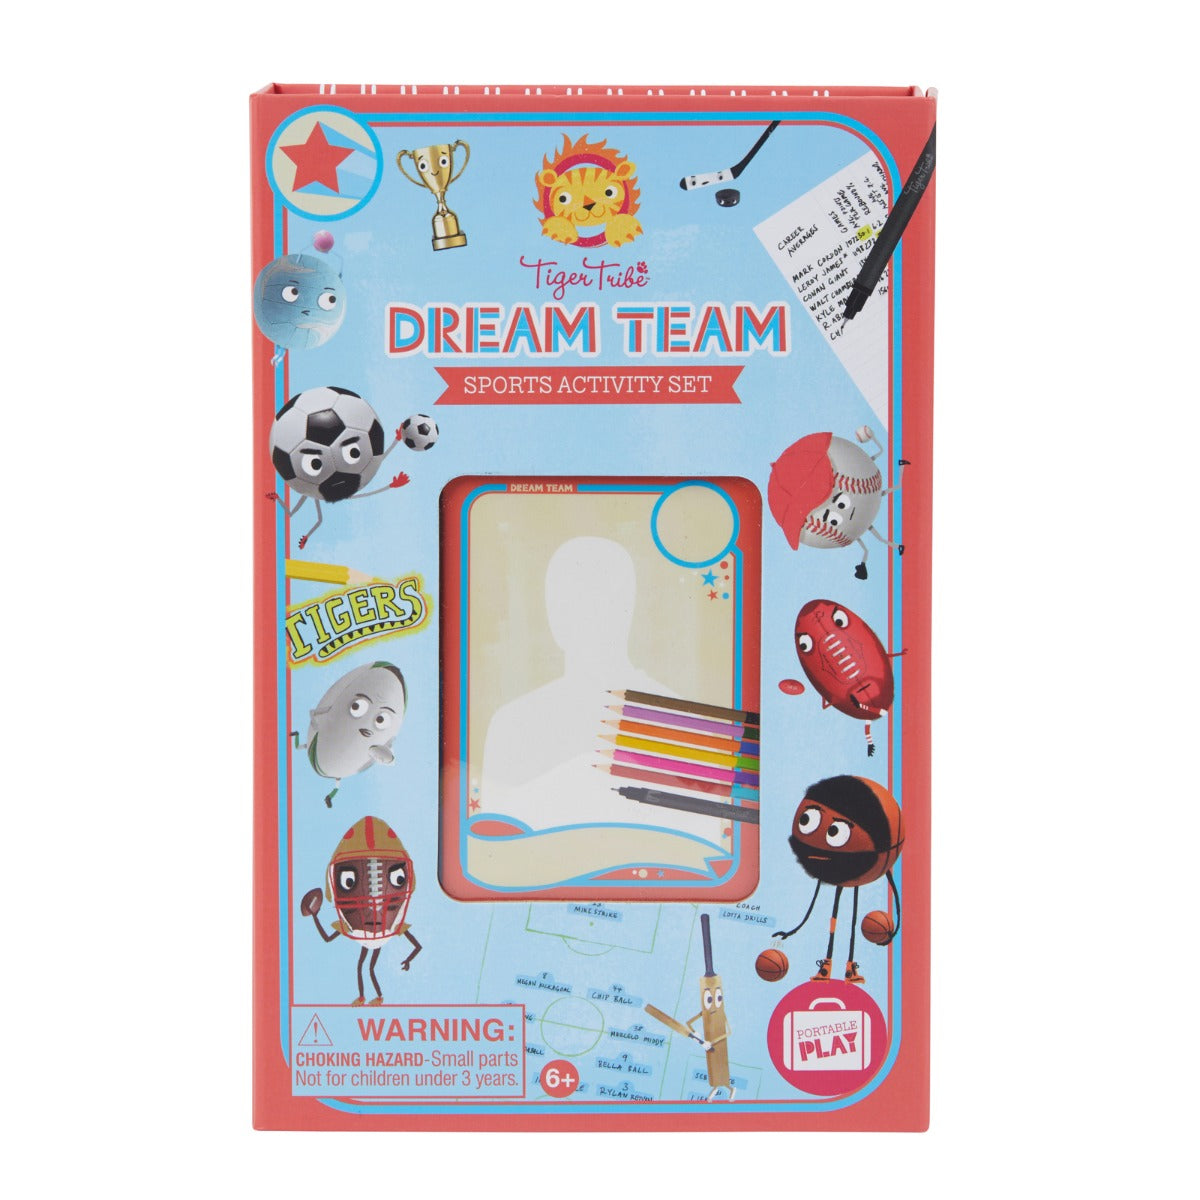 Tiger Tribe Dtream Team Sports Activity Set